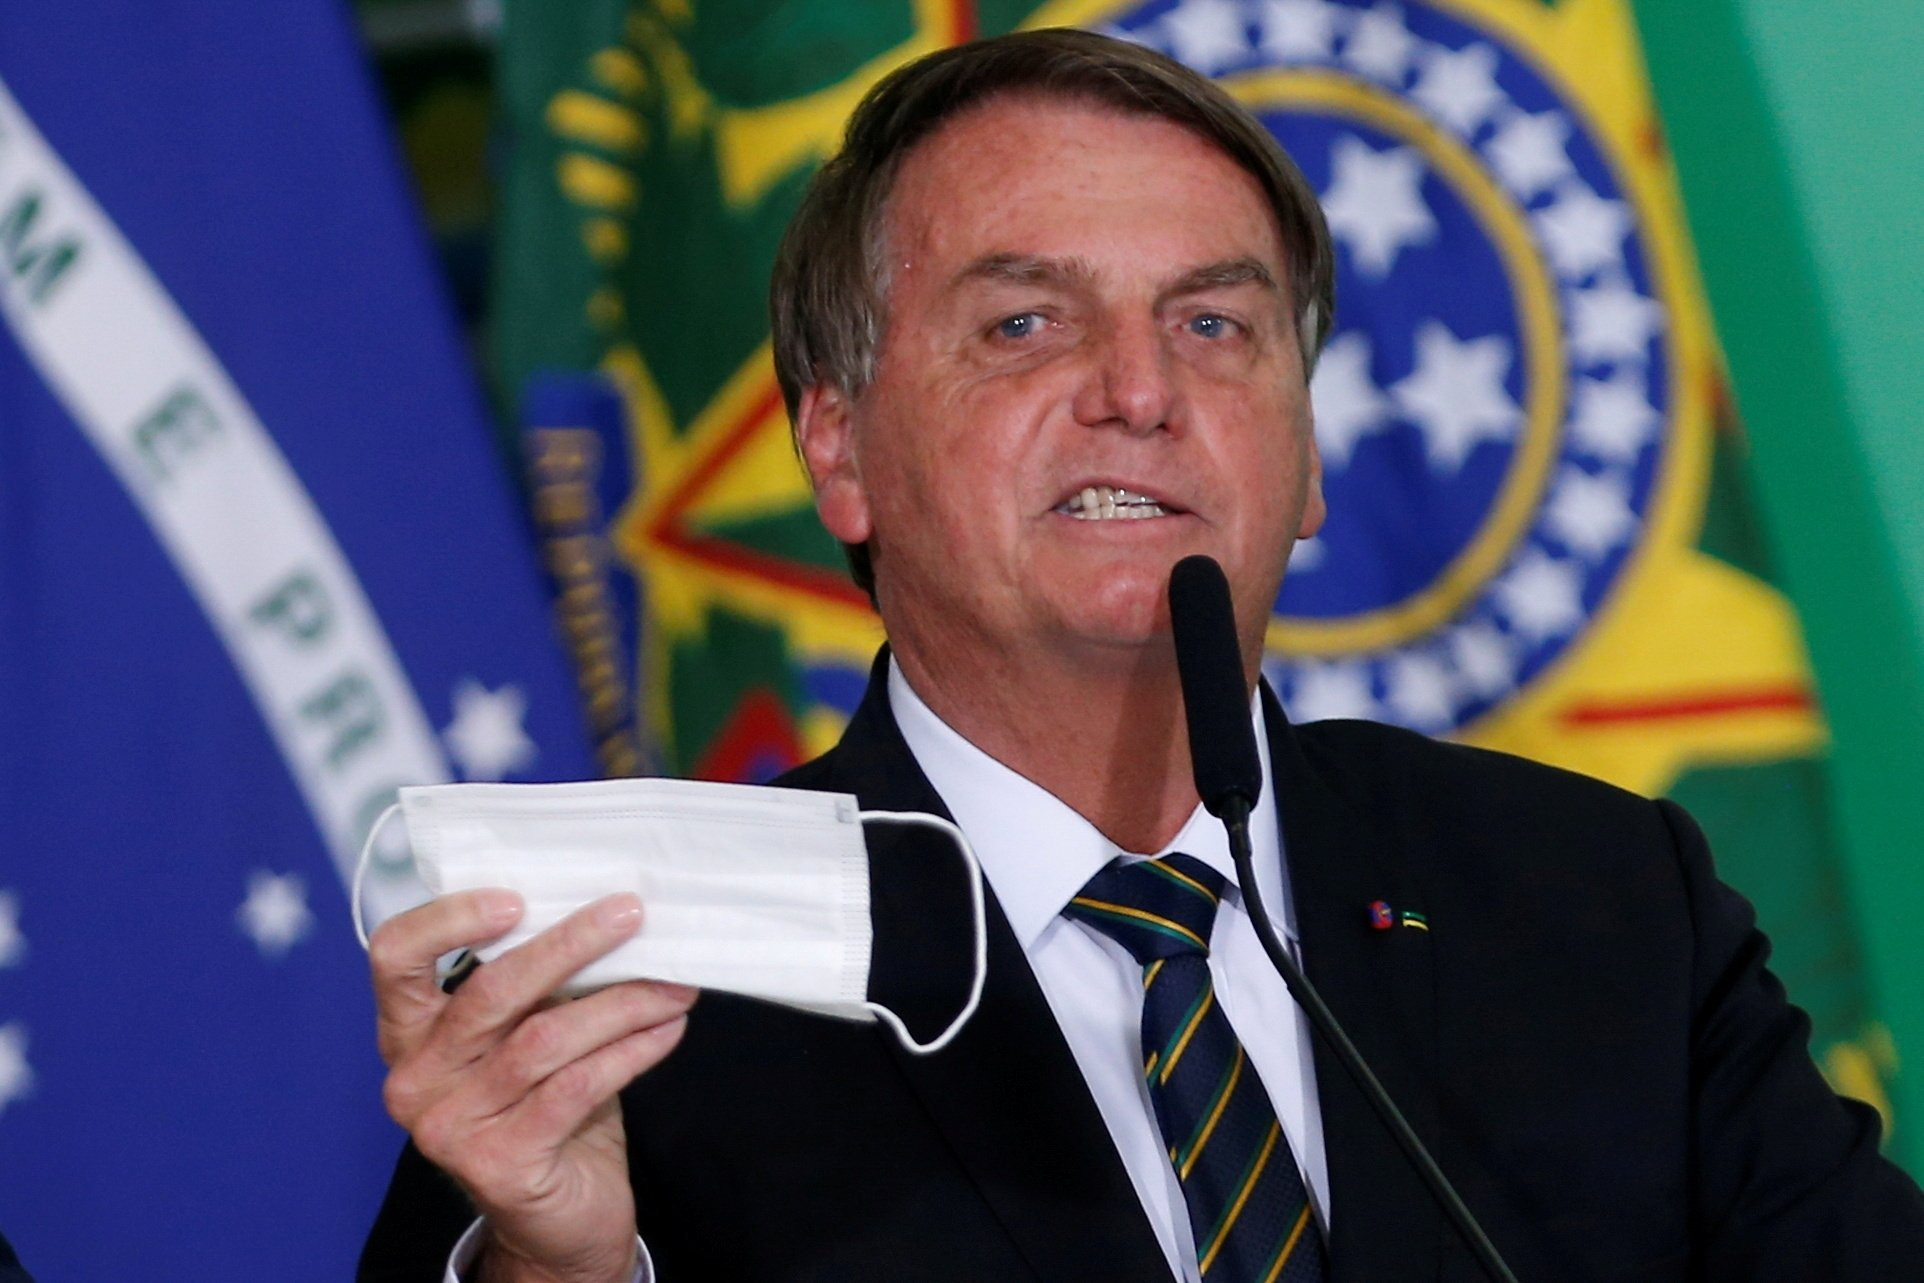 Brazil's President Faces More Corruption Accusations